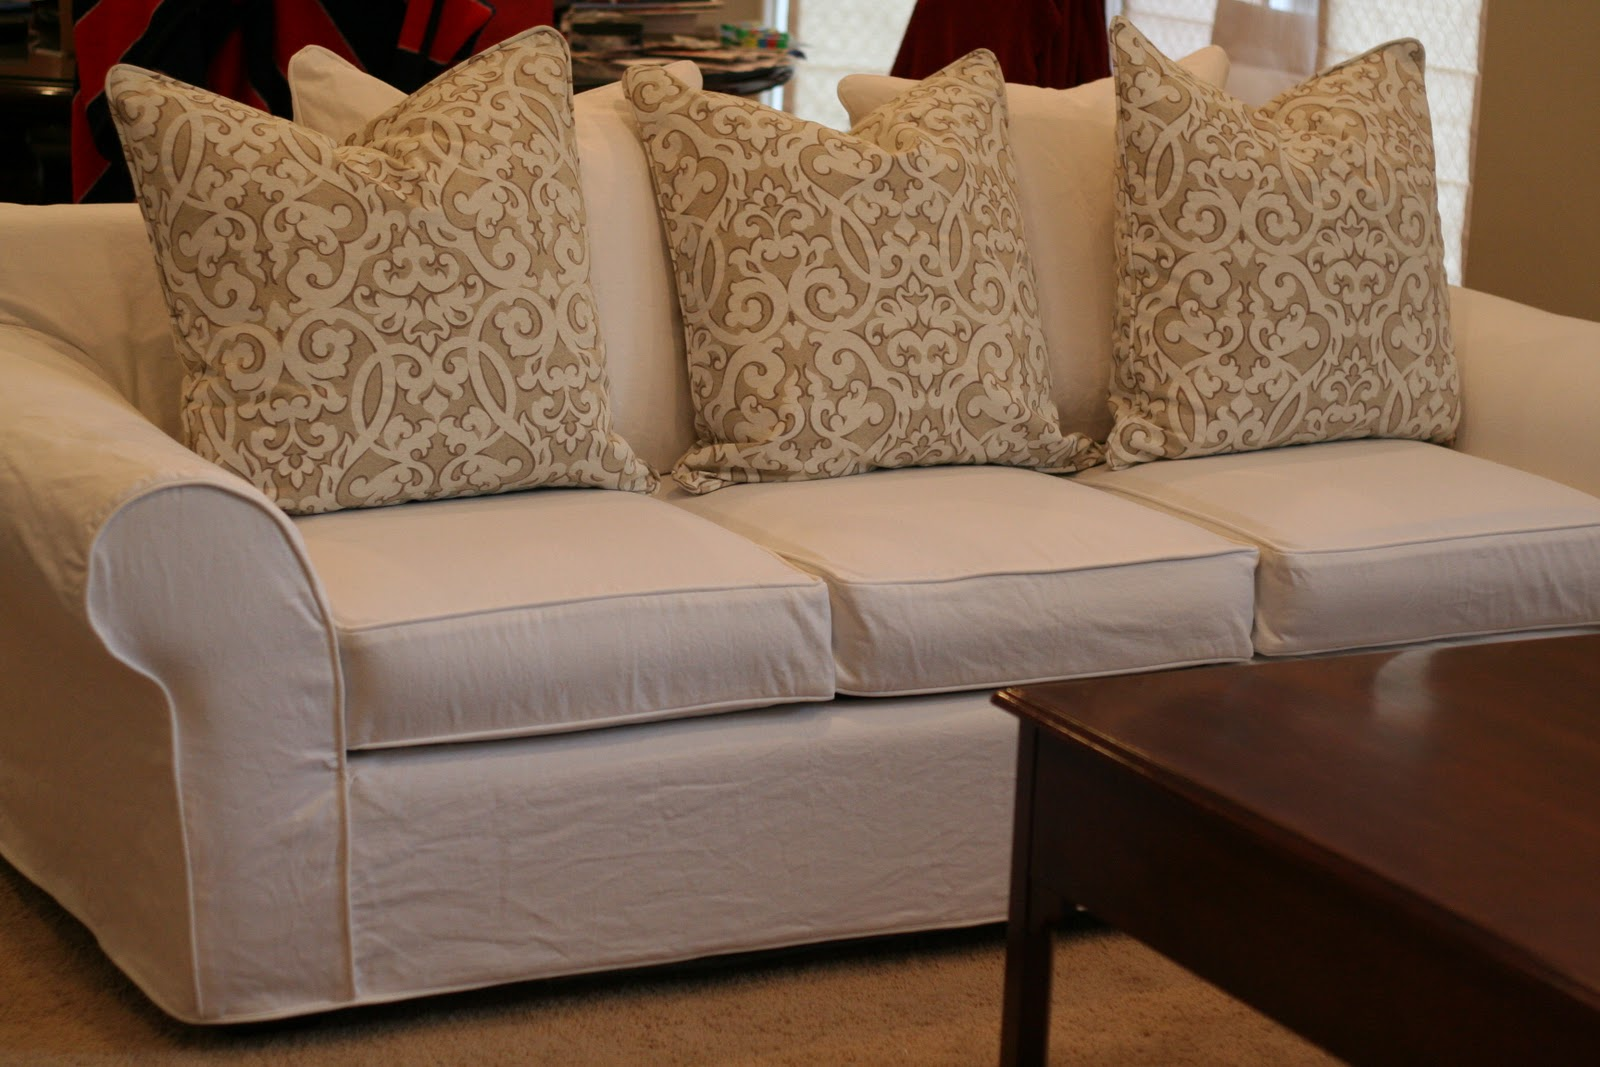 Sagging Couch | Restuffing Couch Cushions | Couch Restuffing Cost